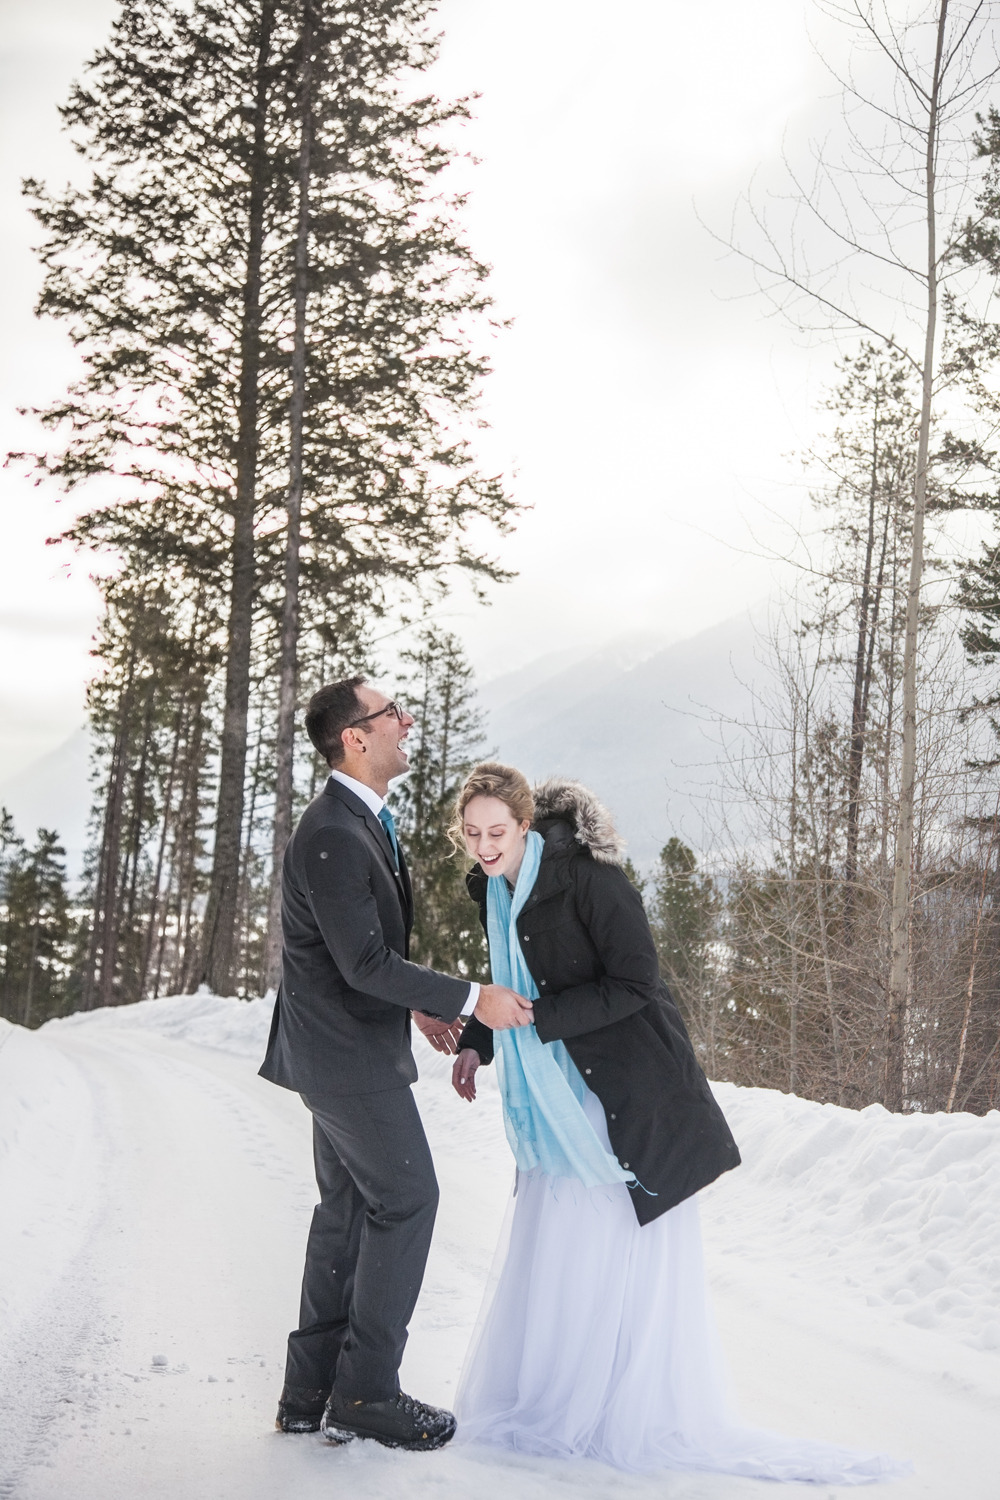 Mid-editing the wedding photos for these two goofballs, and had to share this one. I'm glad they could laugh in the freezing cold air in Fernie that afternoon - more photos to come. <3 you Jenn & Dale!